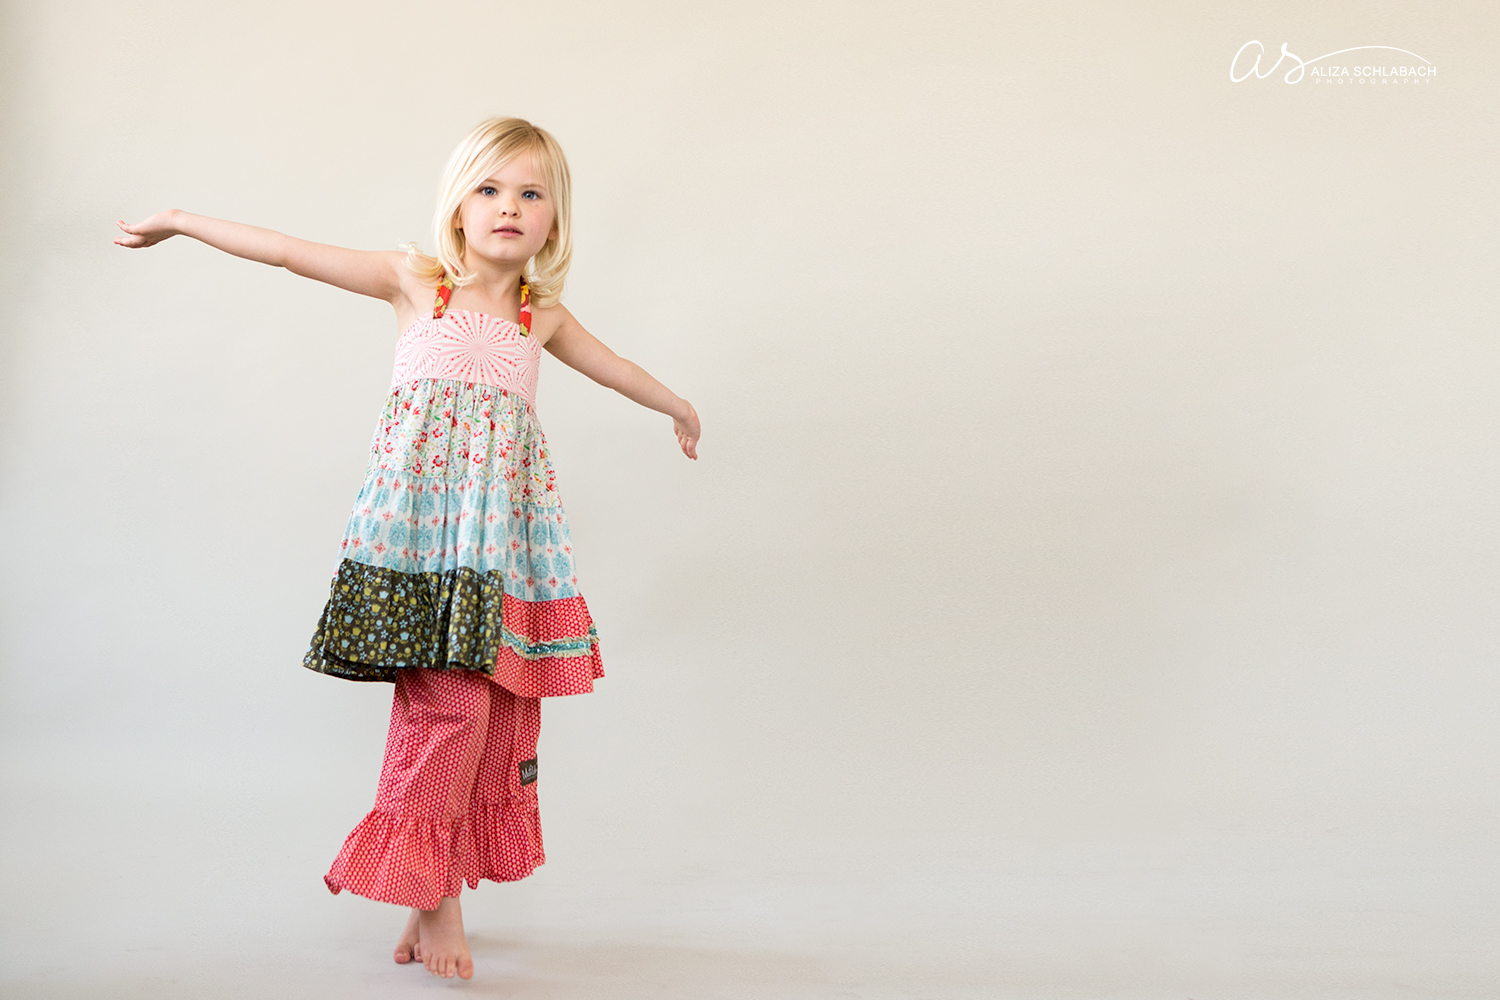 Portrait of a young blonde girl dancing in Matilda Jane clothing